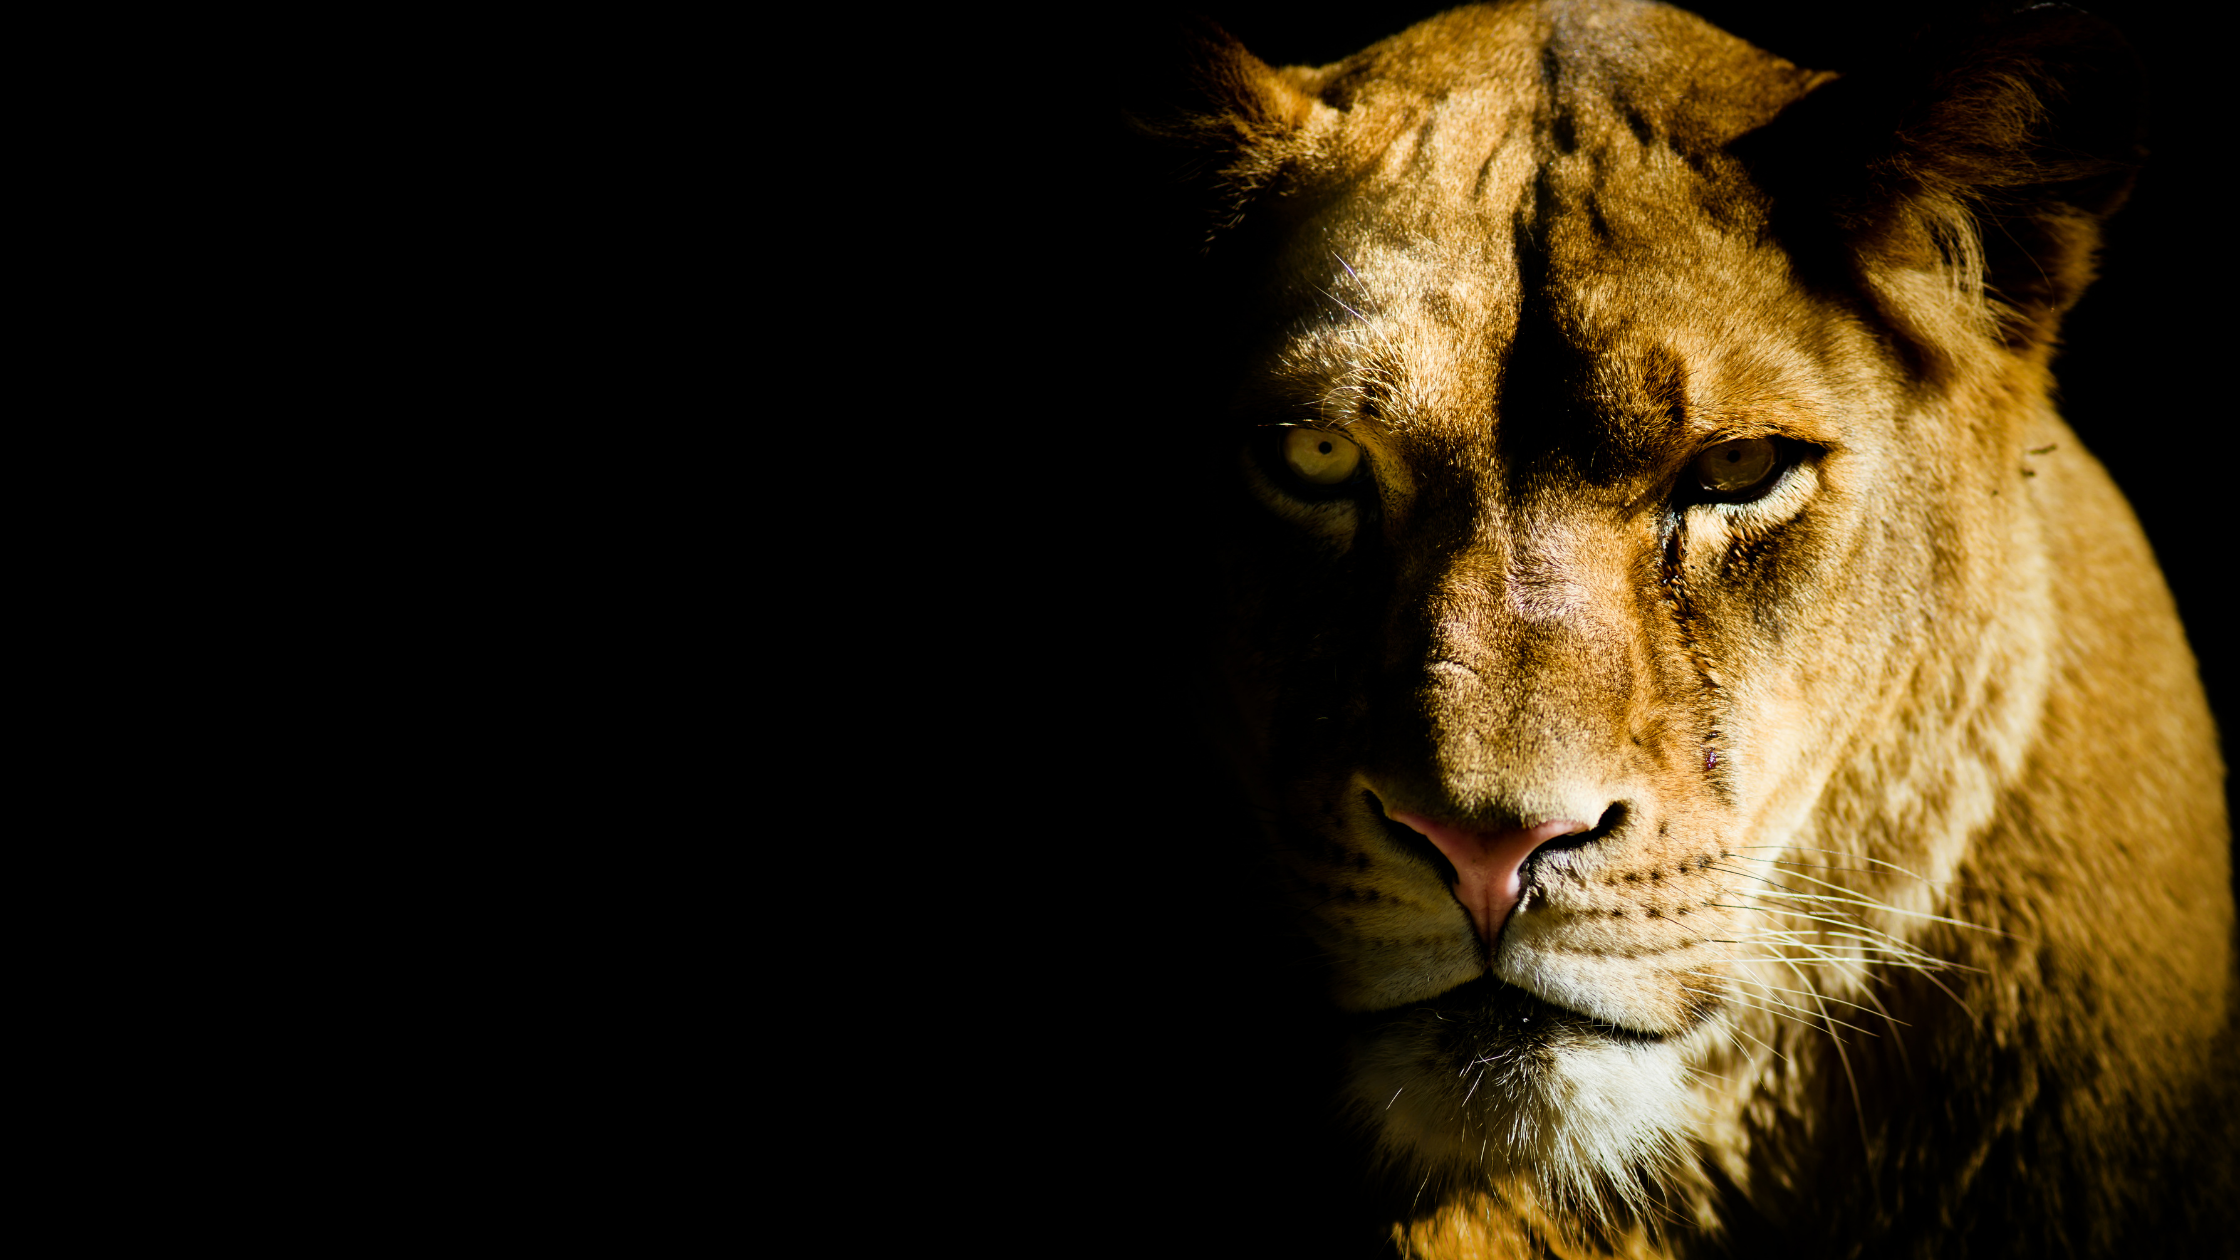 Lioness representing strong women